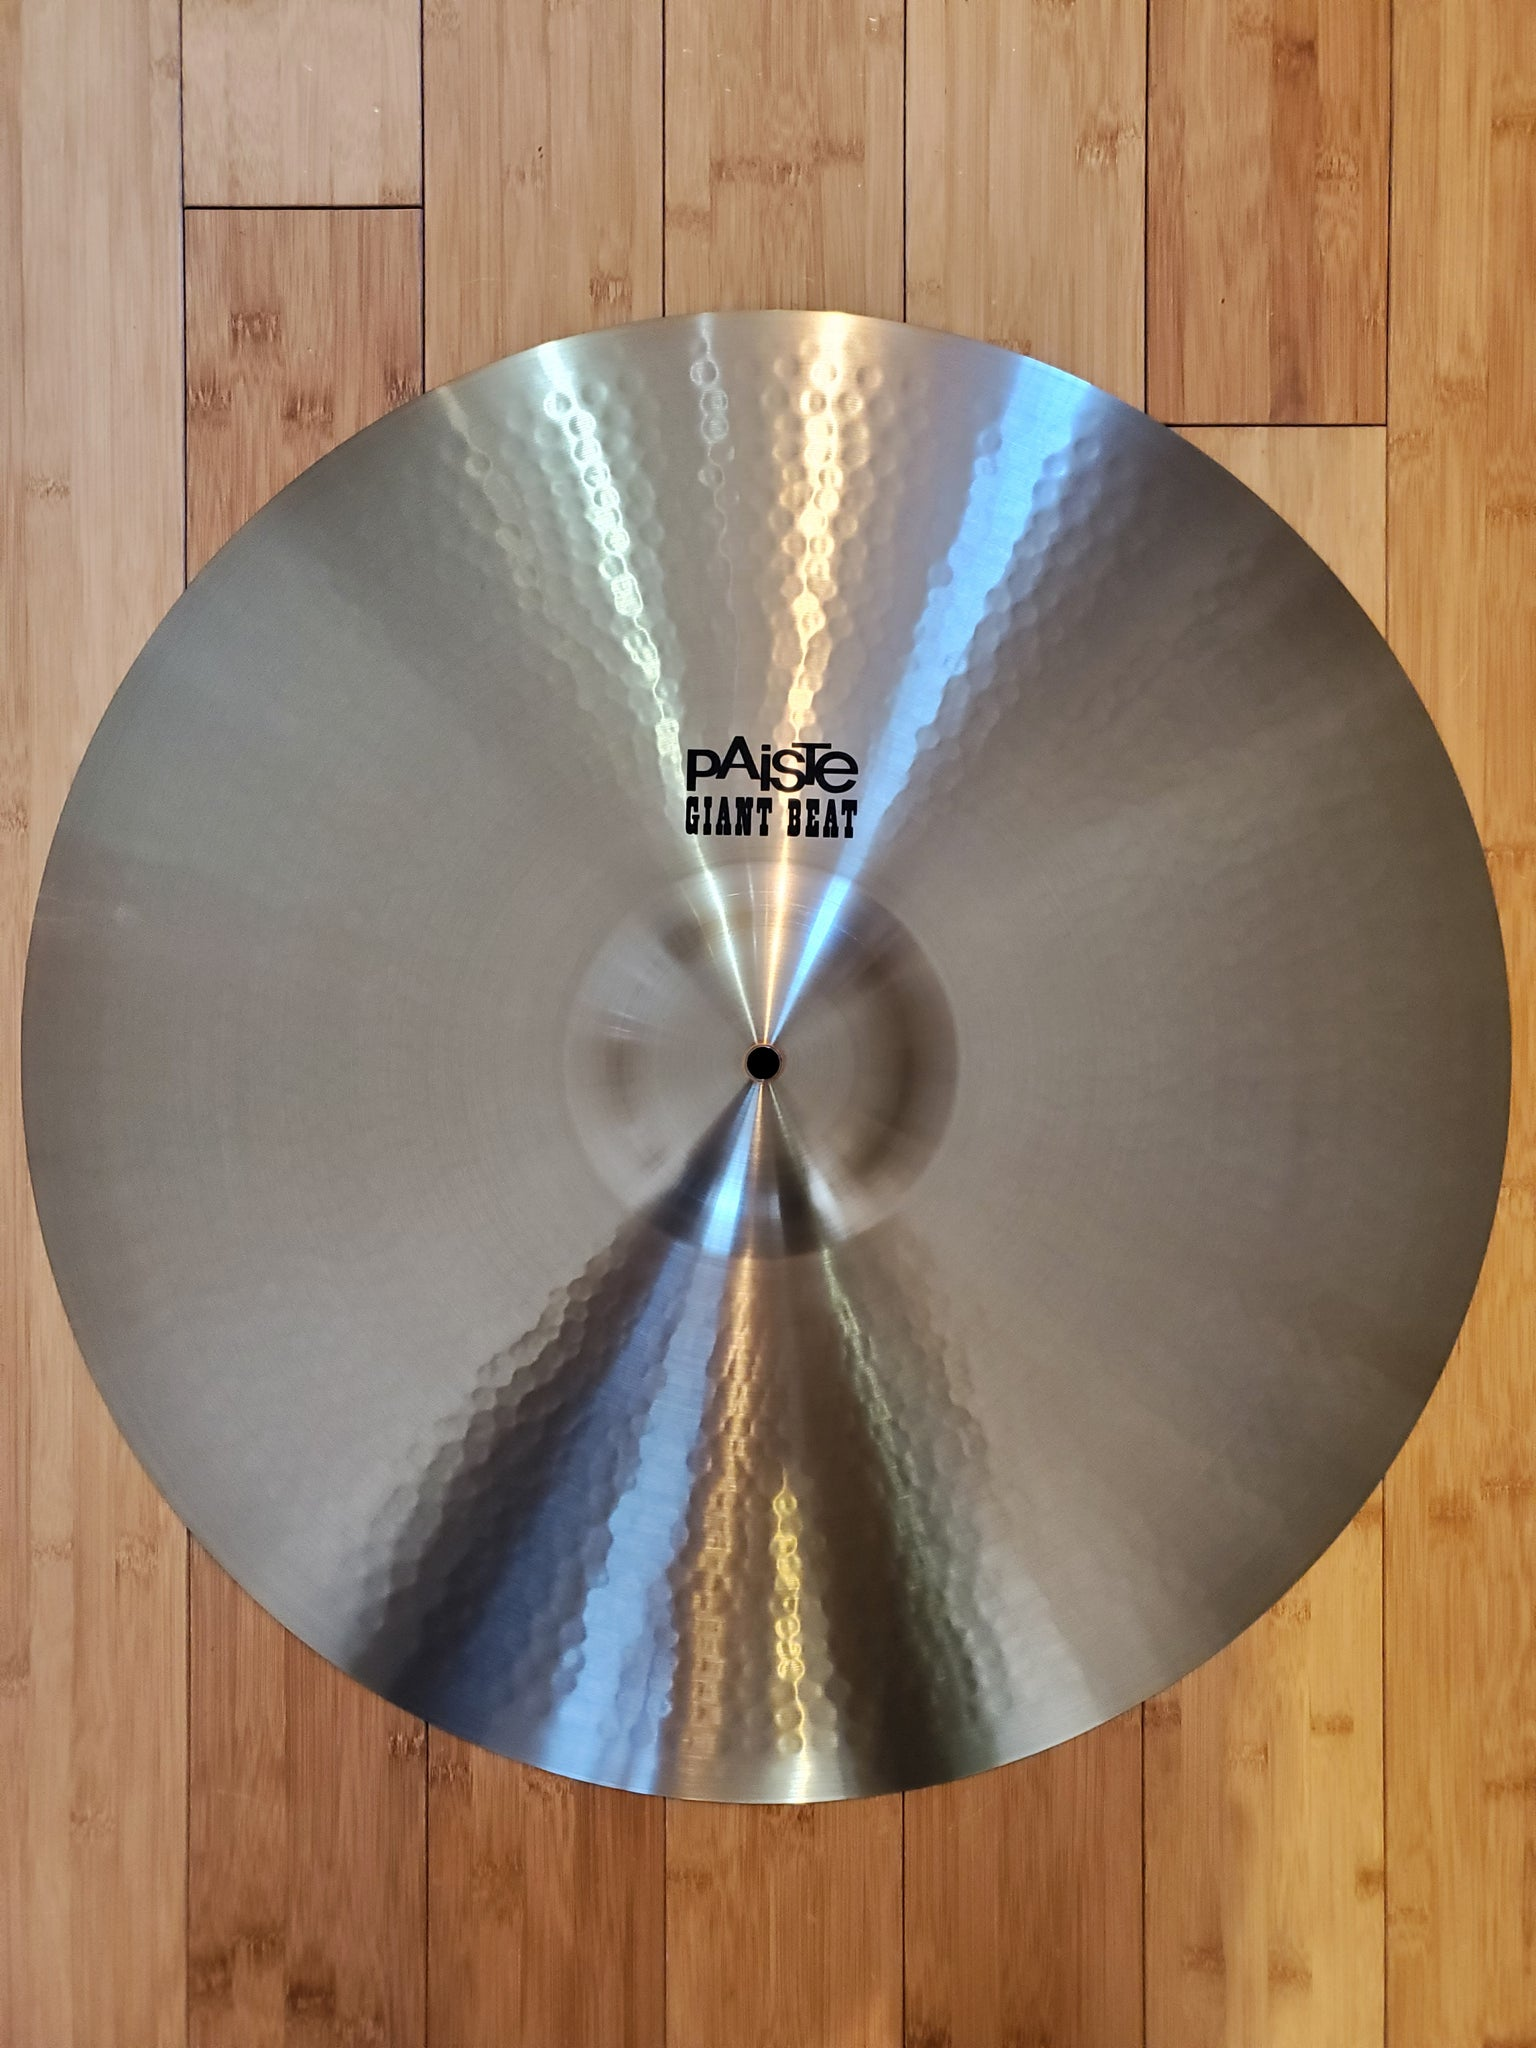 "Cymbals - Paiste 24"" Giant Beat Ride"